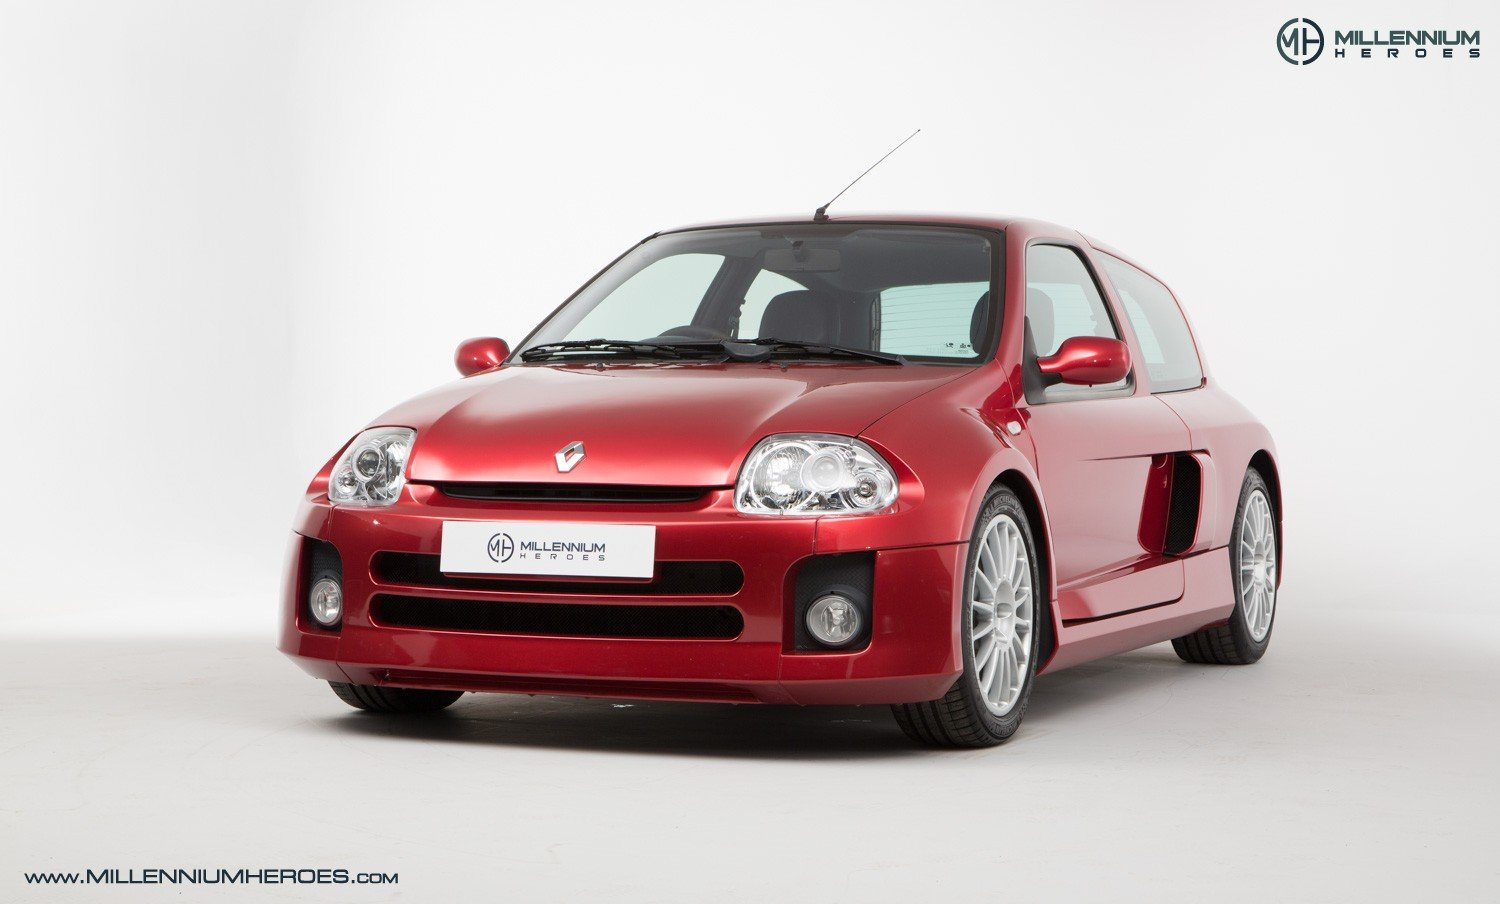 2008 RENAULT MEGANE RENAULTSPORT R26.R For Sale (picture 4 of 7)